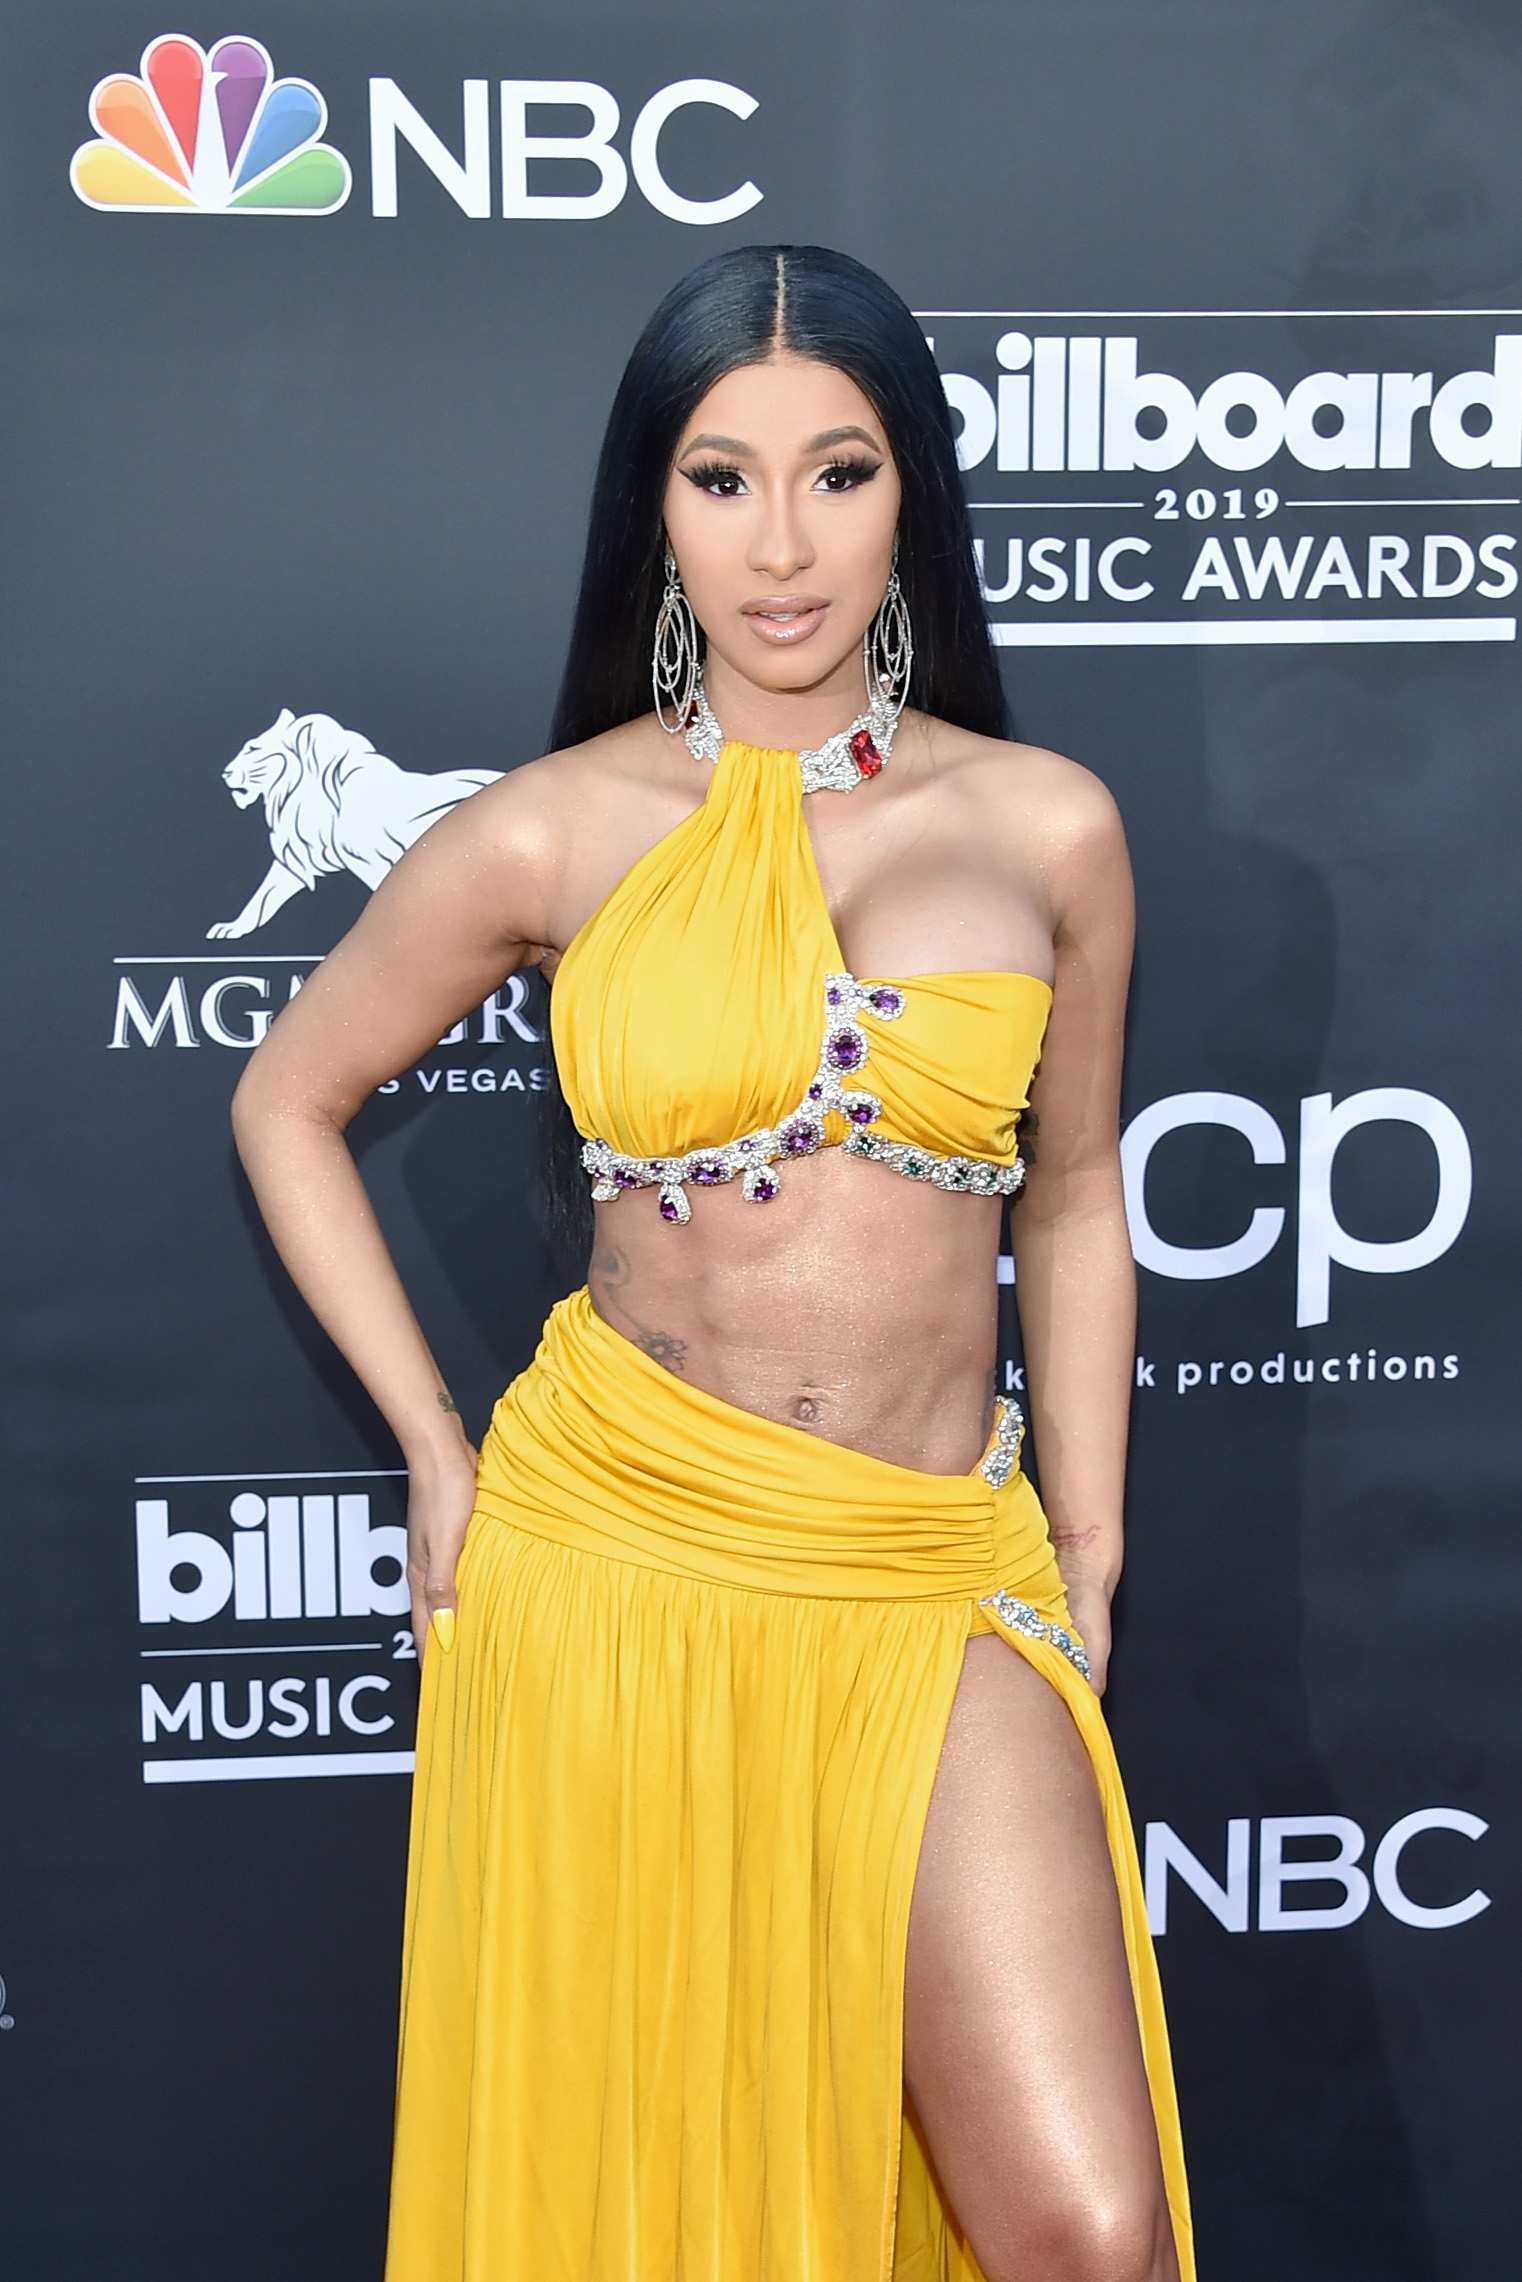 Cardi B wants to use her breasts to float